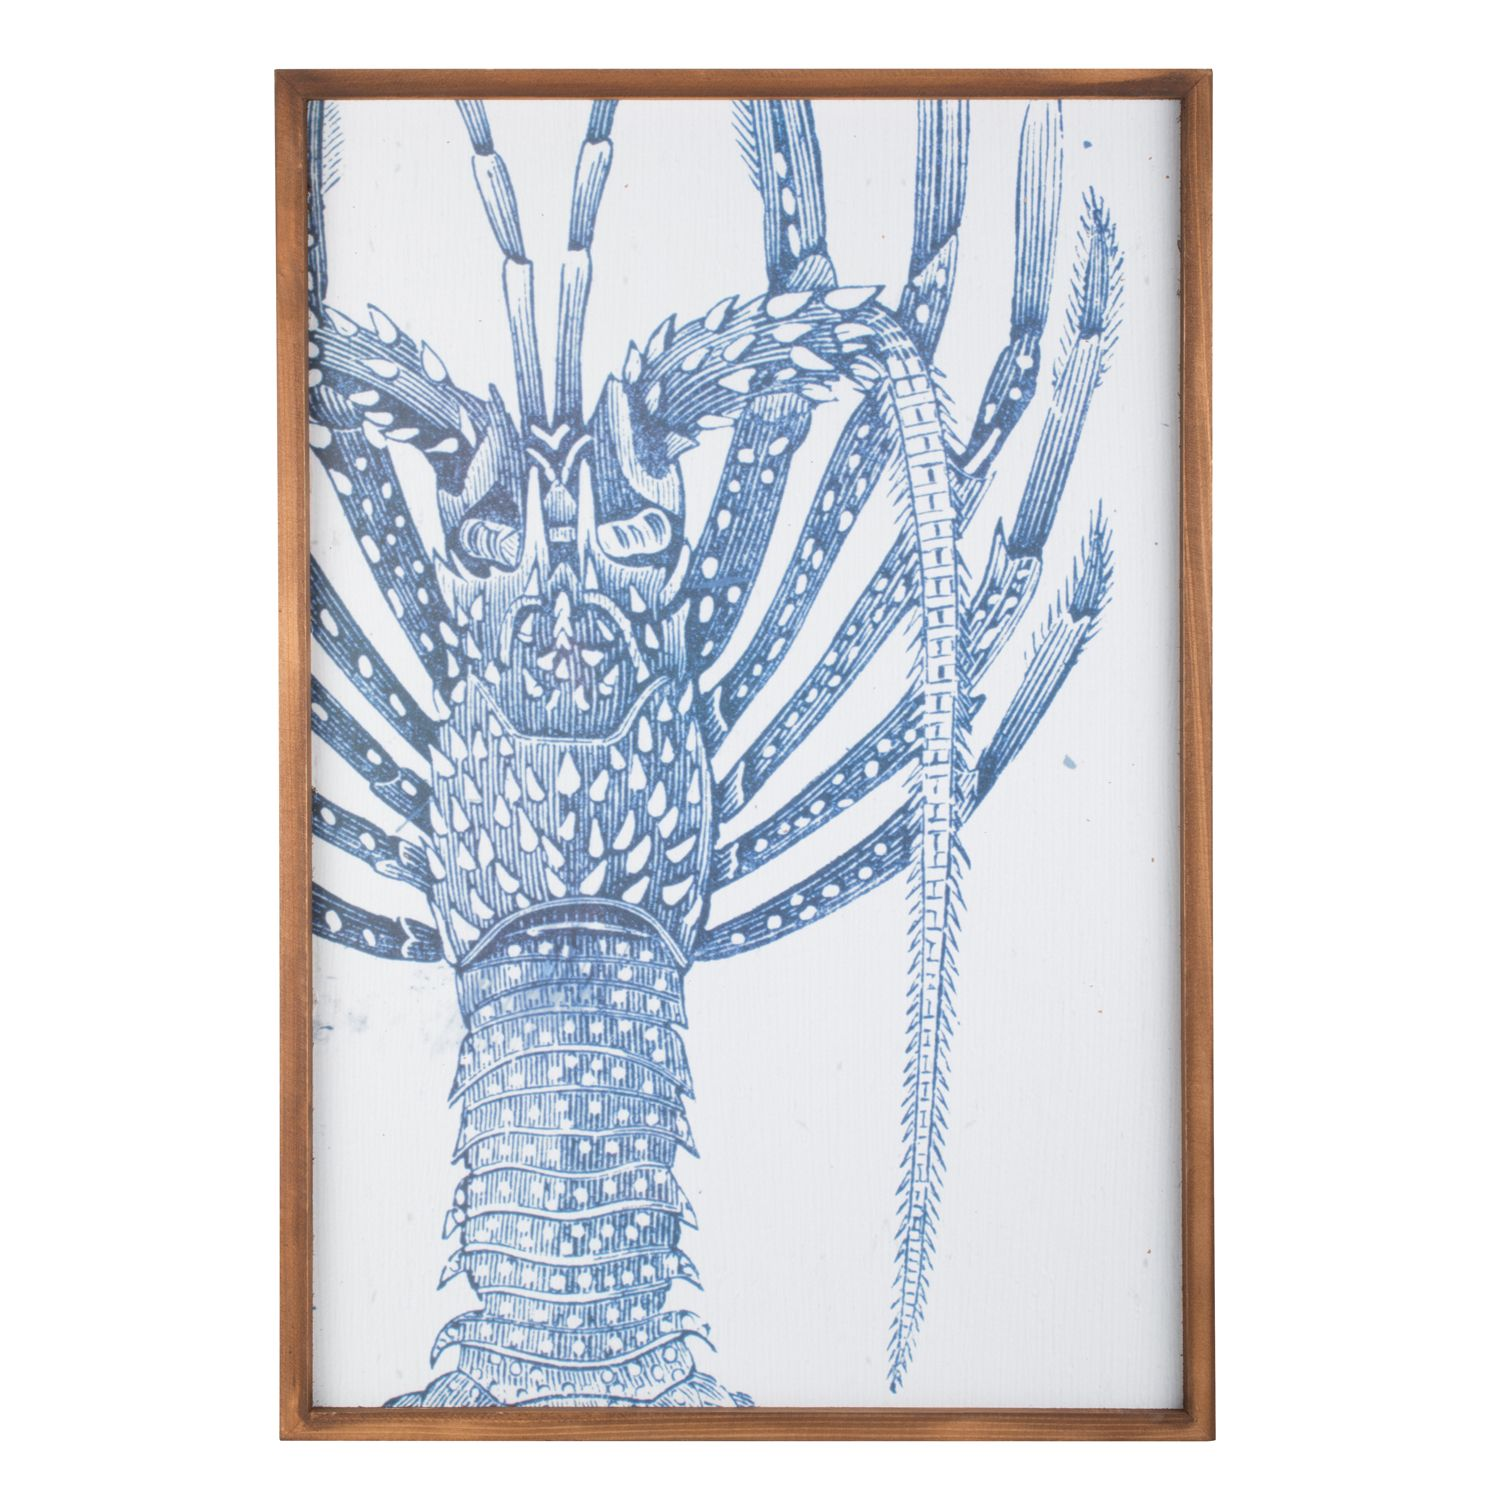 Navy lobster wooden wall art crimbo presents for me pinterest